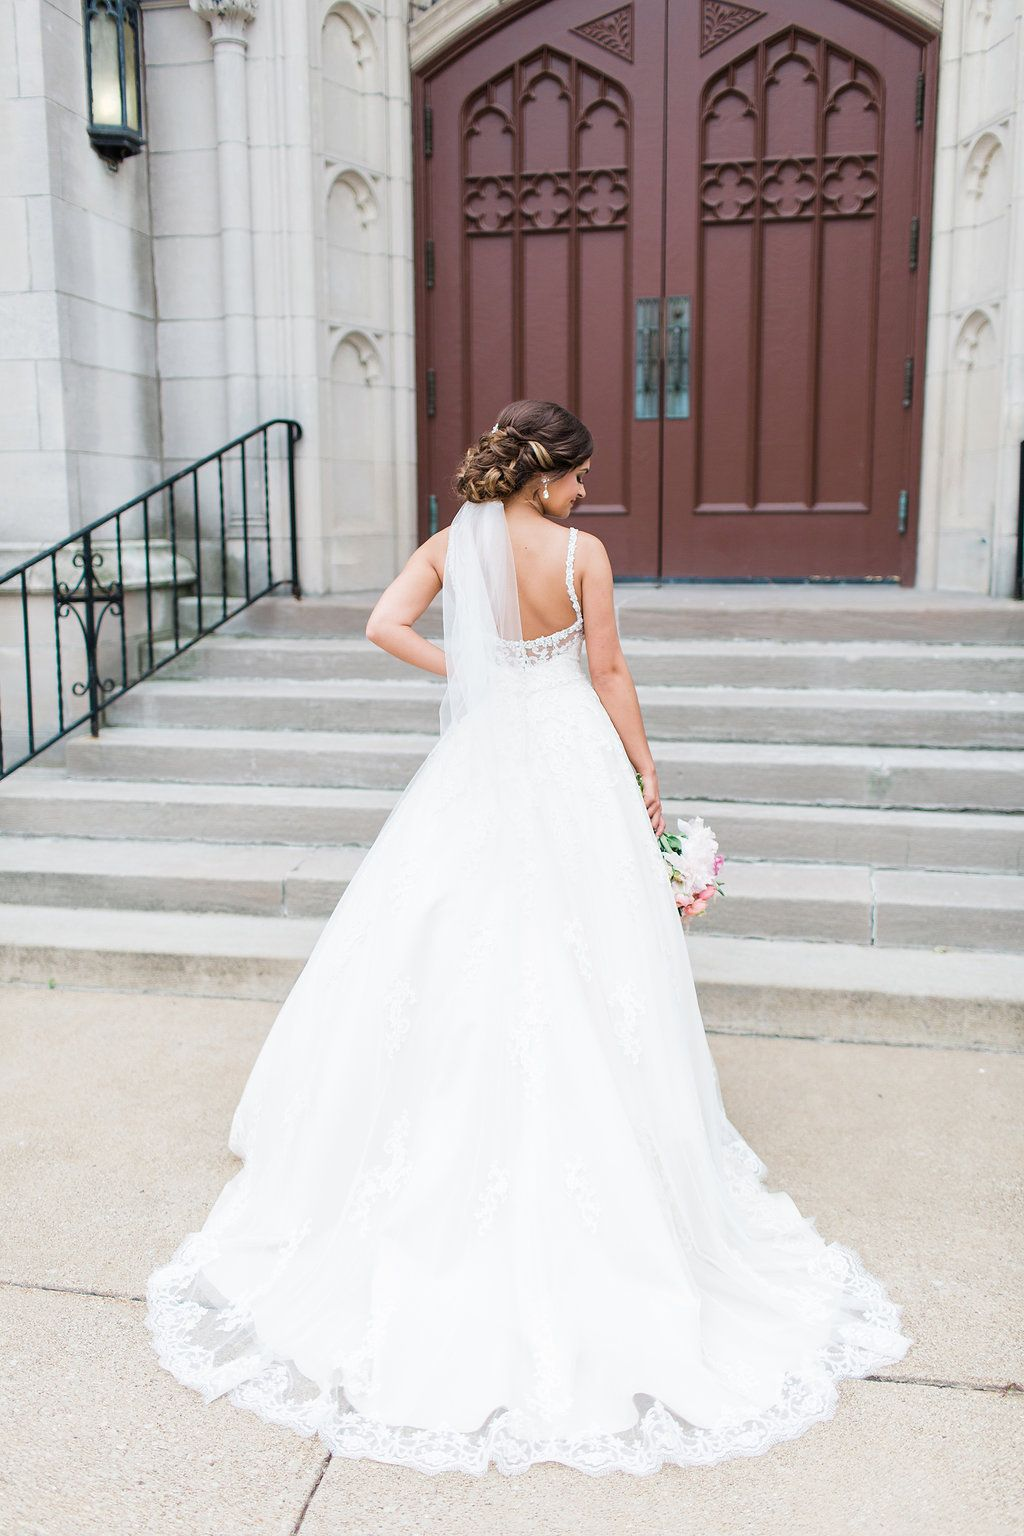 Elegant Blush Wedding with a Touch of Glam and Ballgown   Ballgown ...